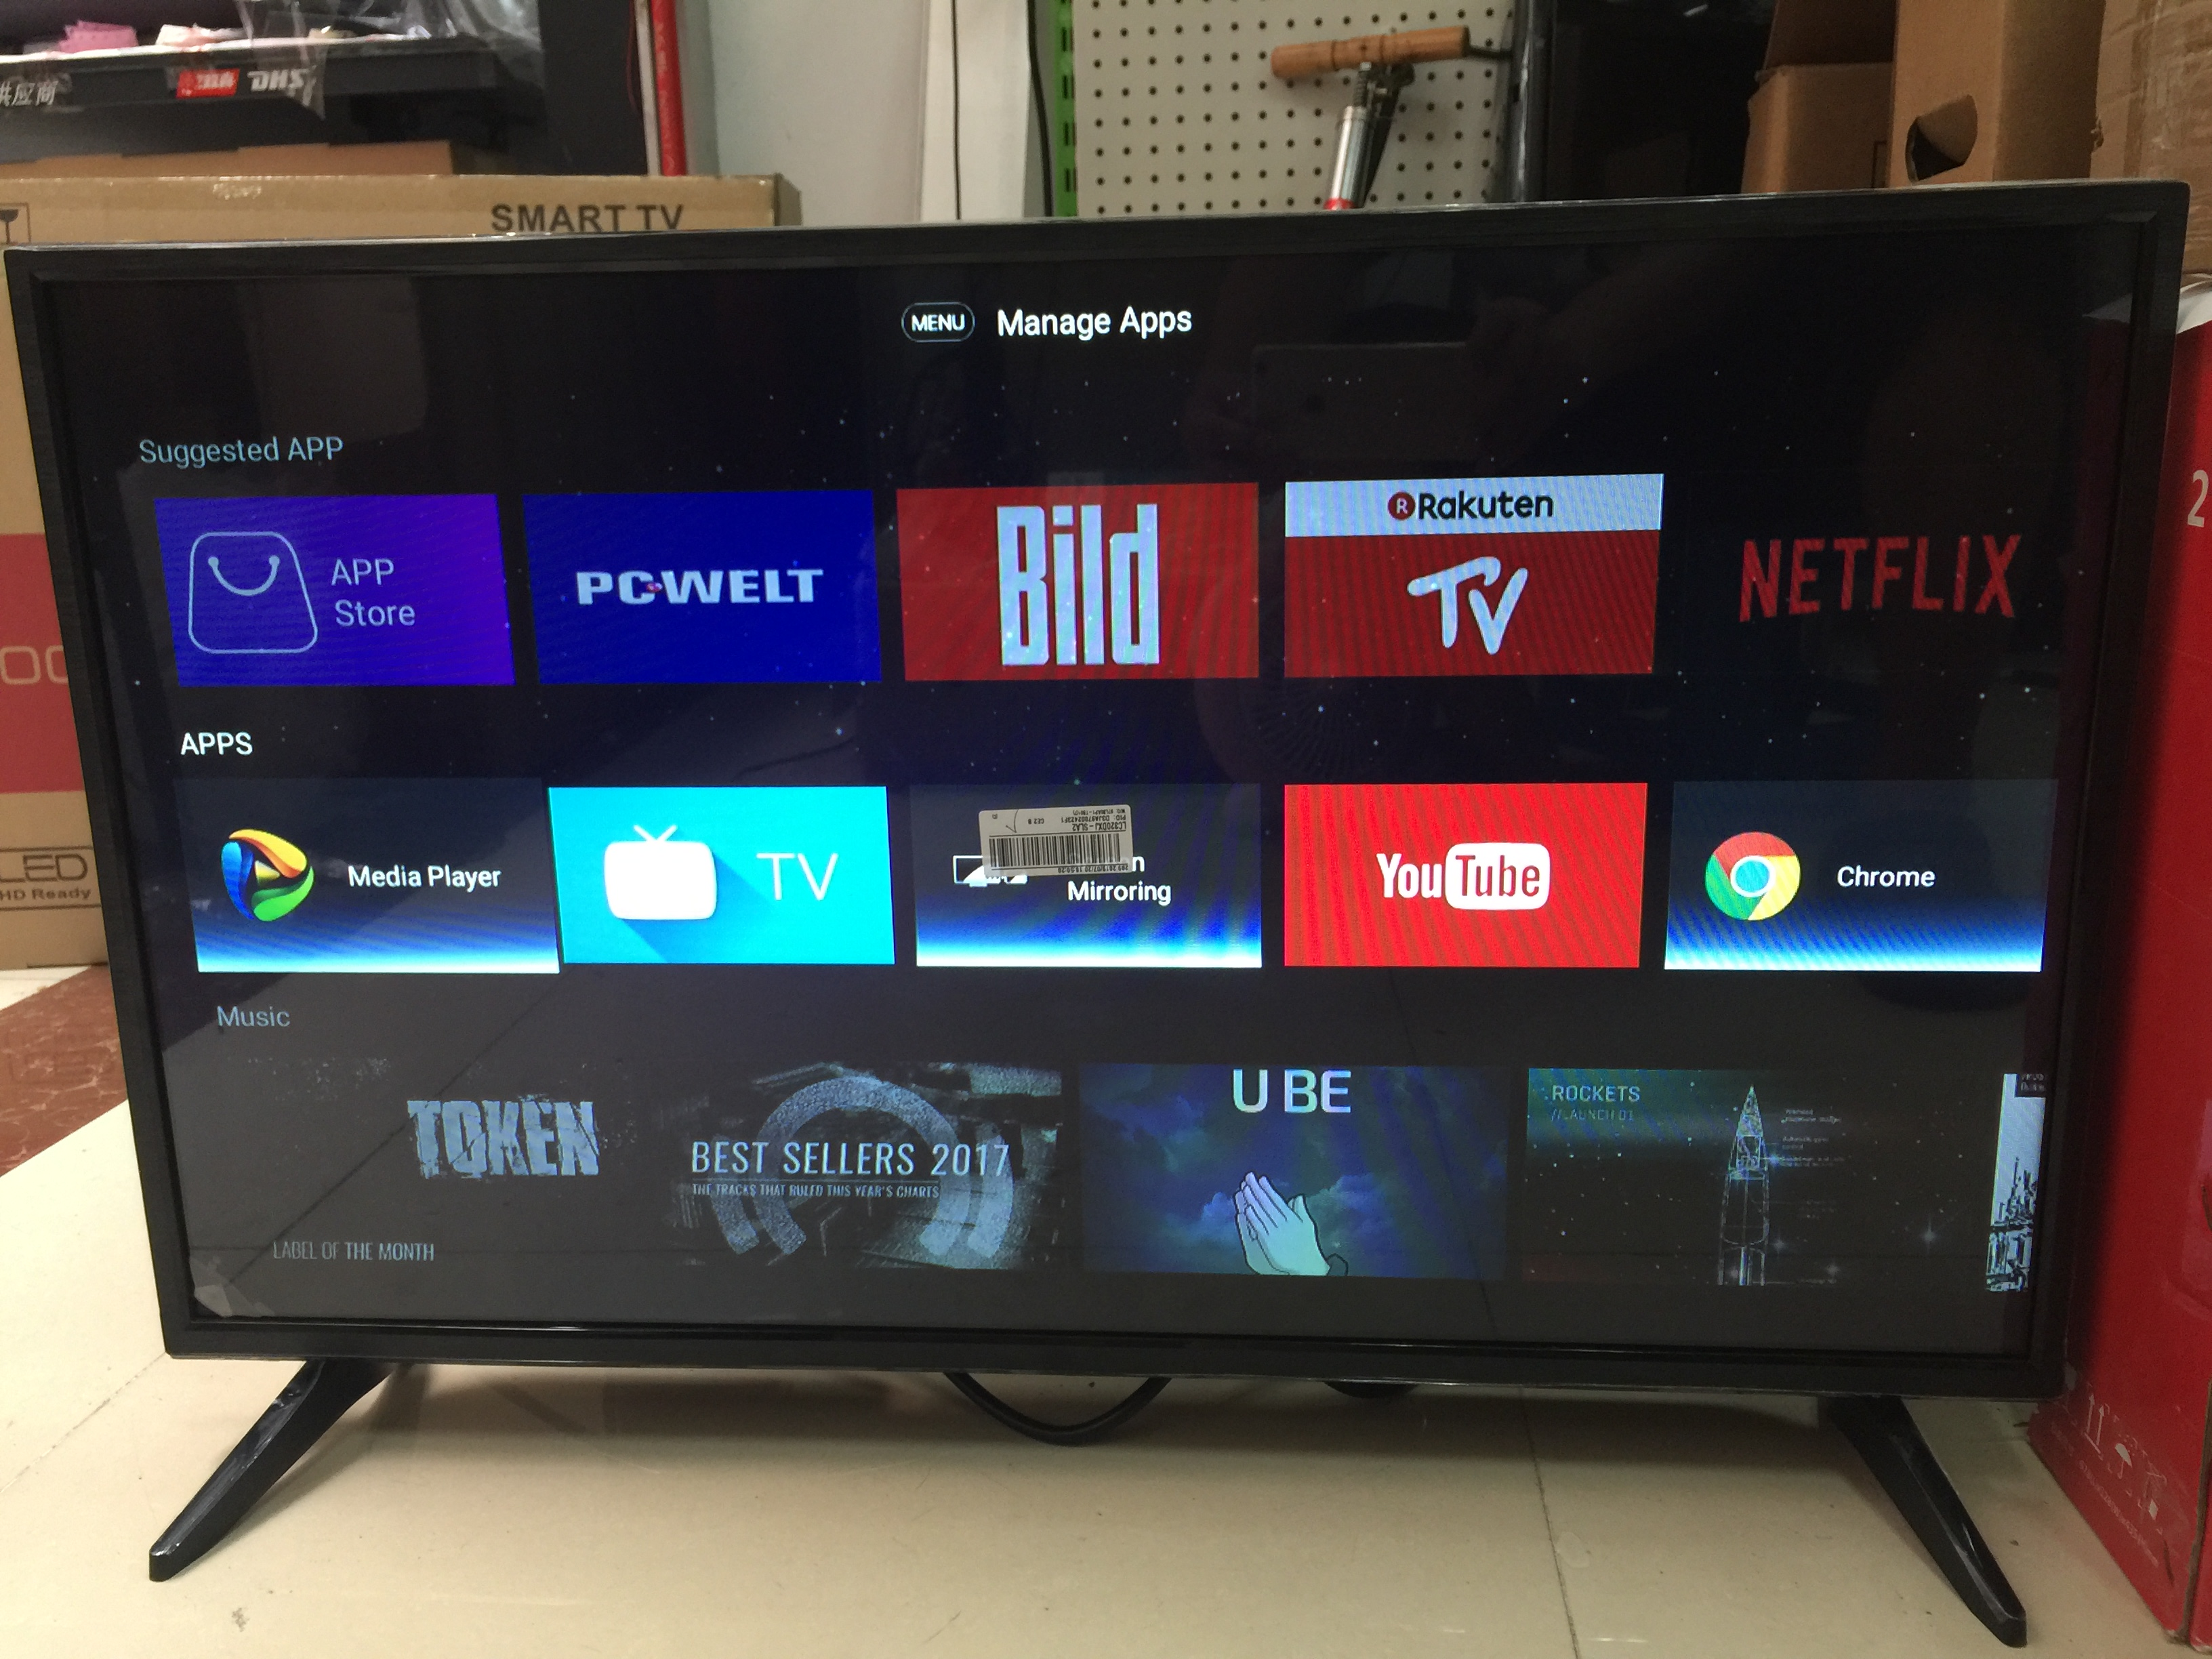 Monitor sizes of 55 inch grobal version youtube TV android OS 7.1.1 smart wifi internet LED 4K television TV